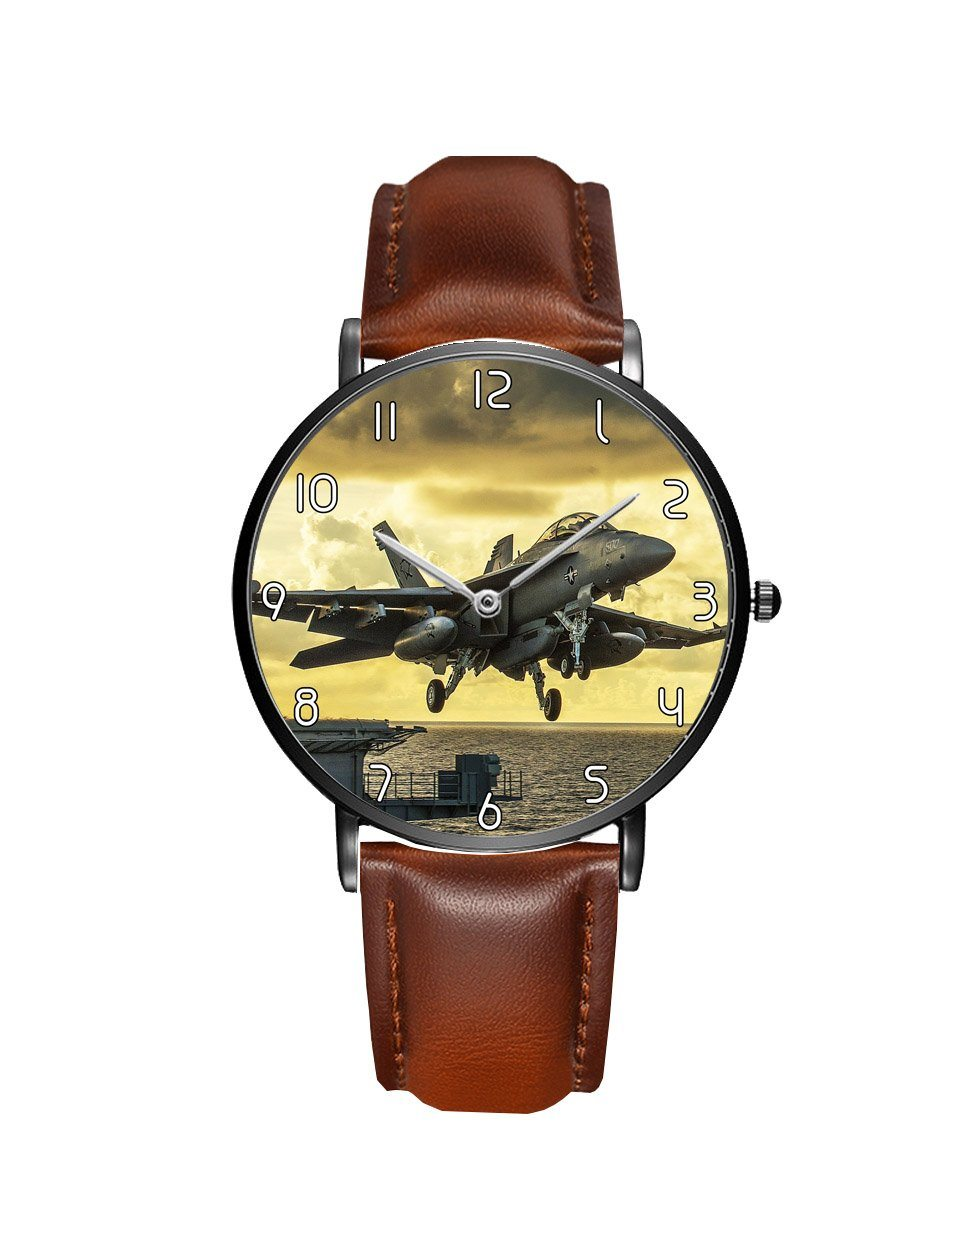 Departing Jet Aircraft Printed Leather Strap Watches Aviation Shop Black & Brown Leather Strap